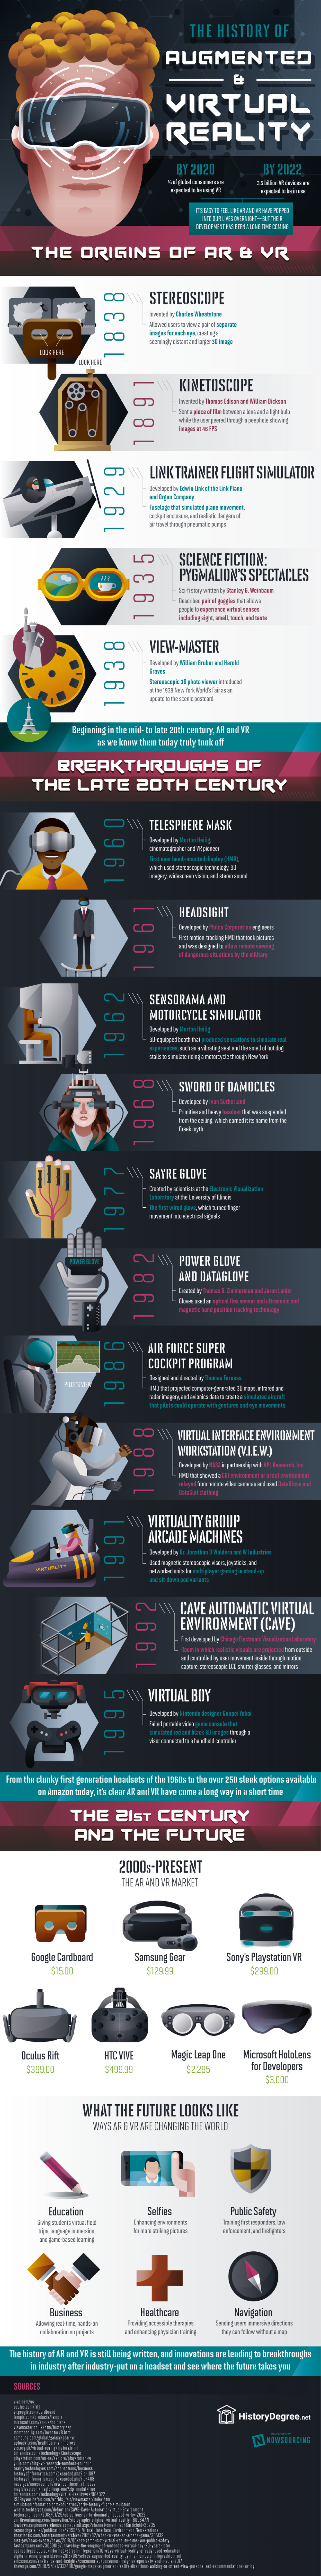 The Long and Storied History Of AR and VR Infographic